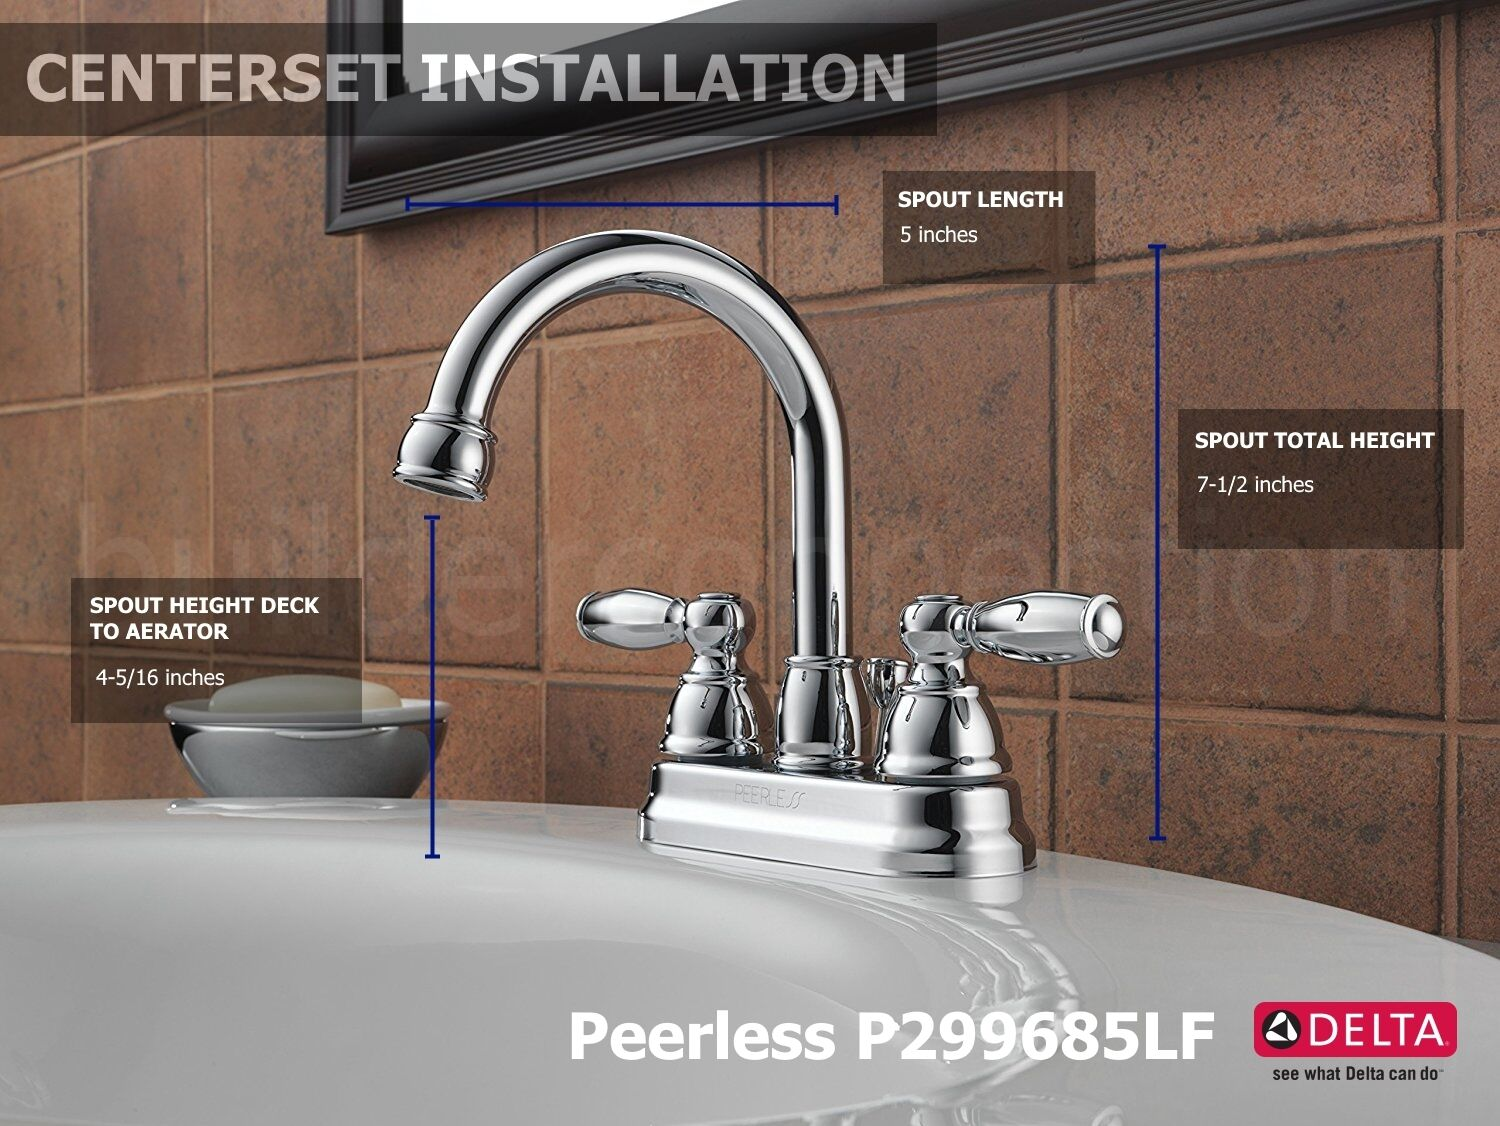 Peerless P299685LF Two Handle Centerset Lavatory Faucet With Drain ...